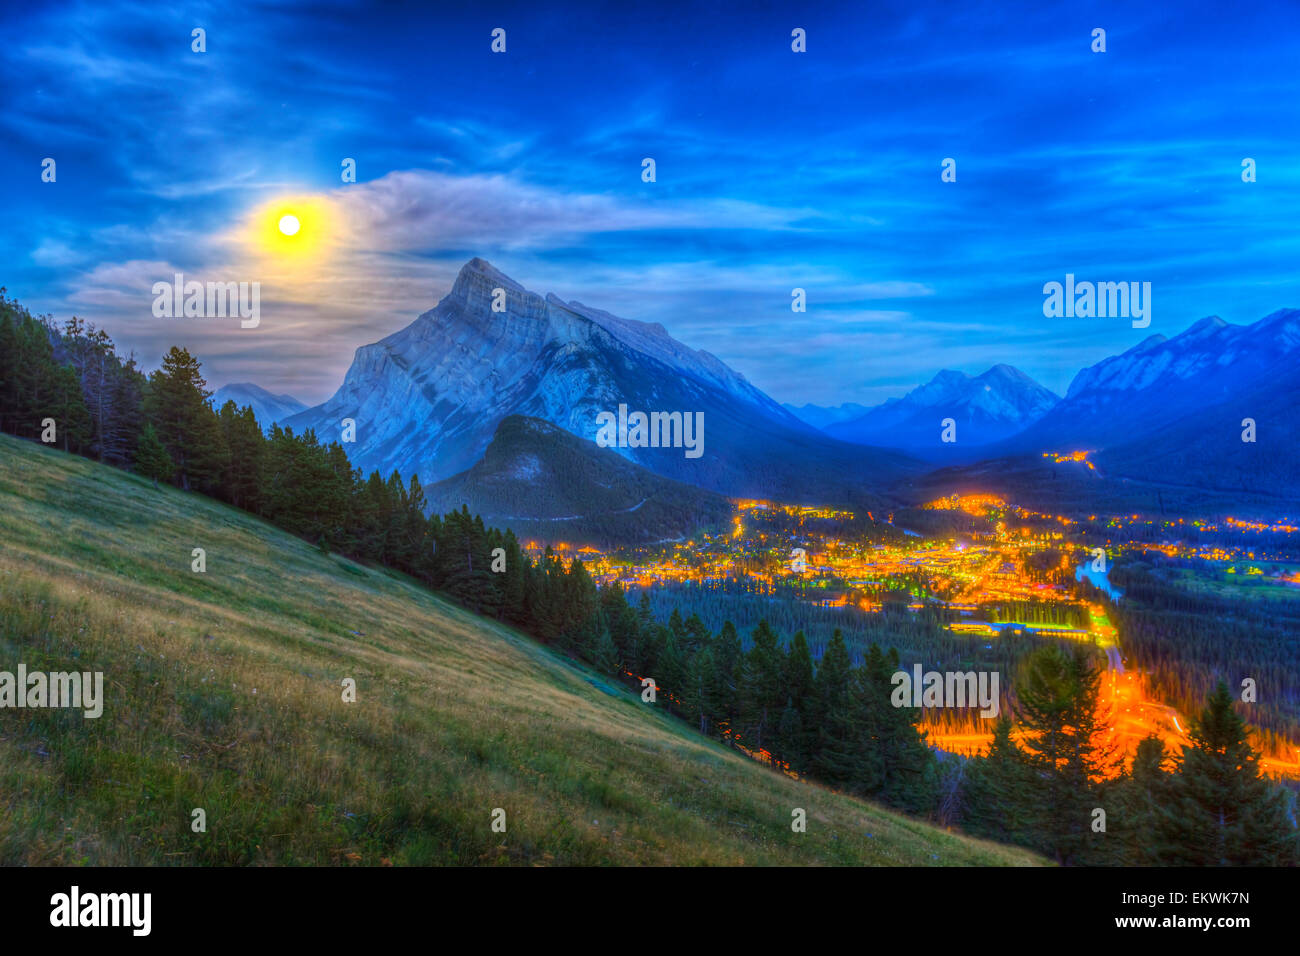 August 10, 2014 - High dynamic range photo of the supermoon rising behind Mt. Rundle and Banff townsite, as seen - Stock Image